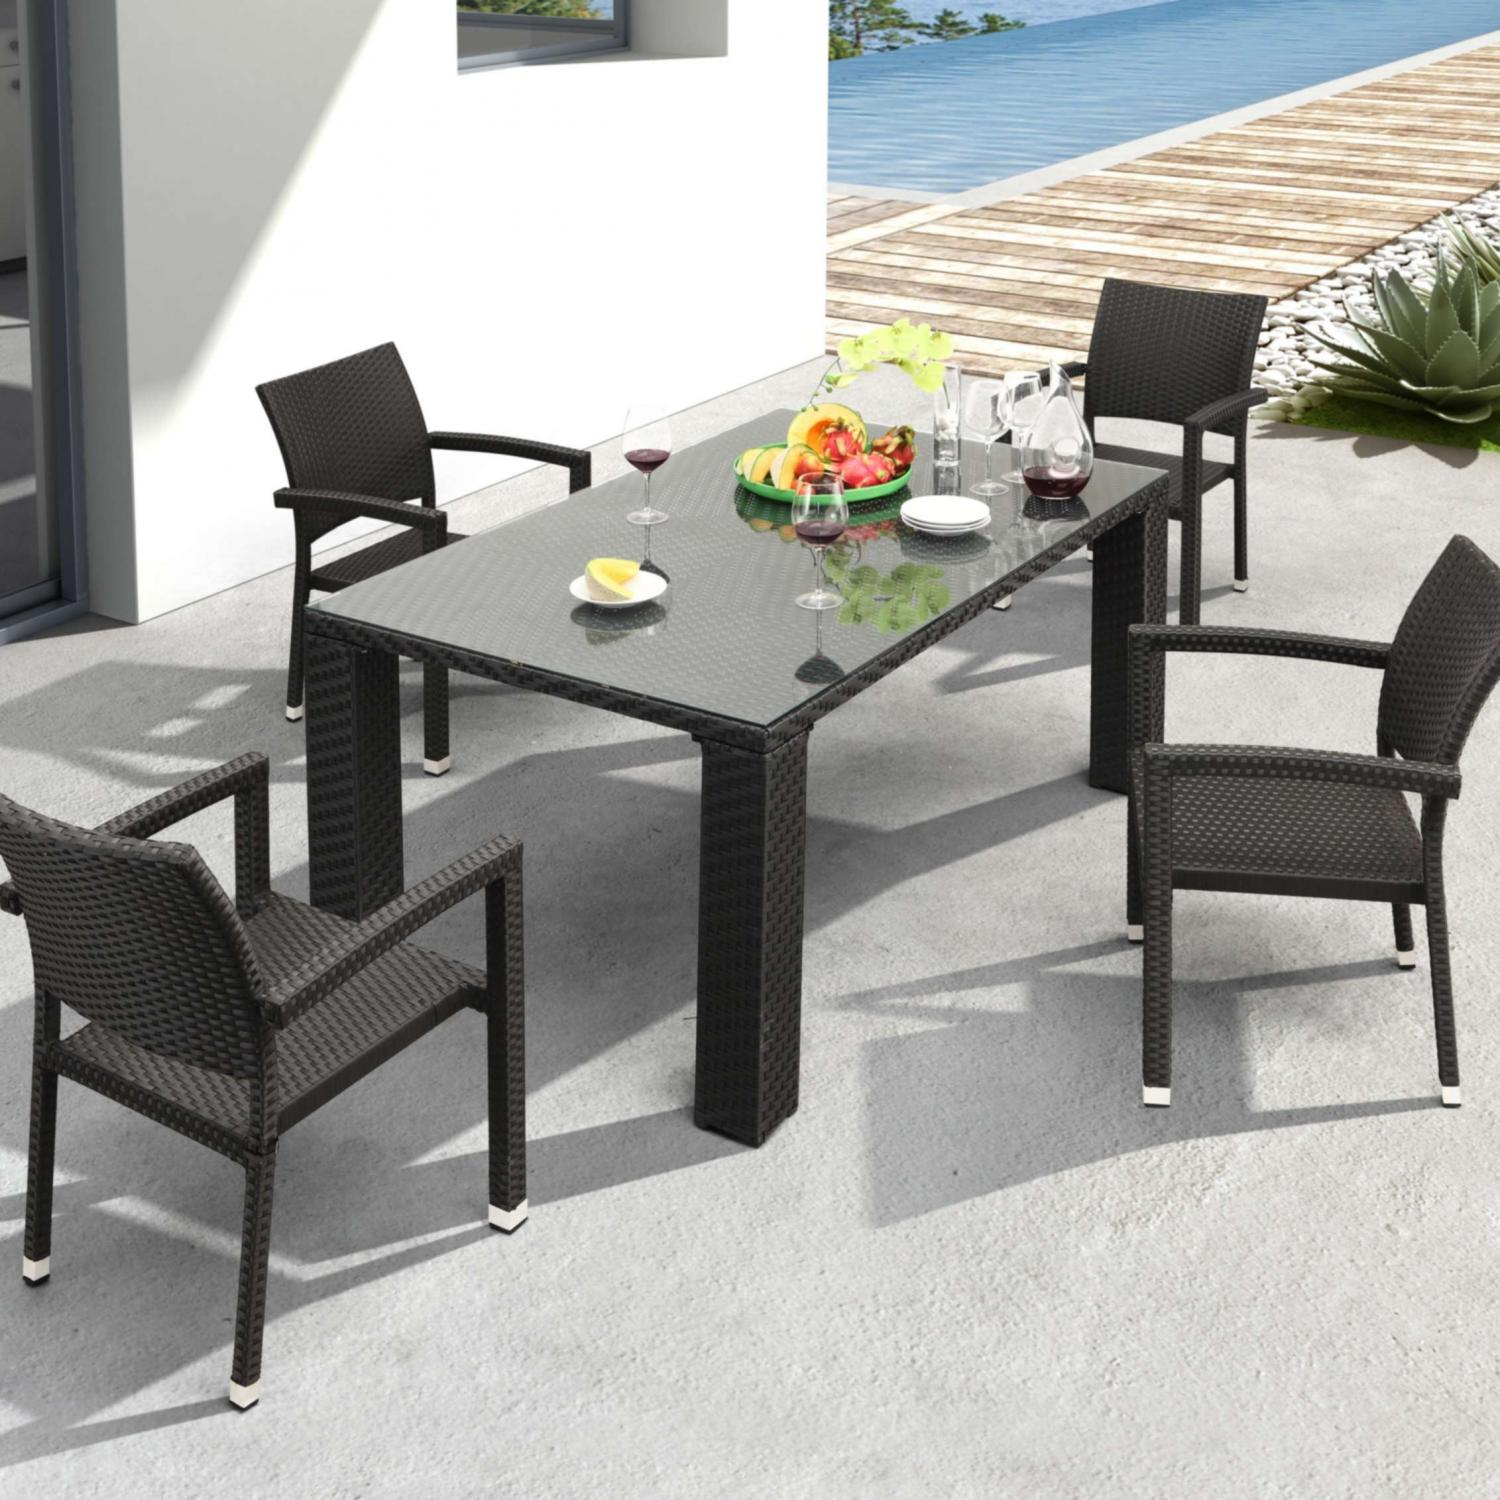 Zuo Modern Boracay Patio Dining Set With Glass Top Table - Seats 4 at Sears.com